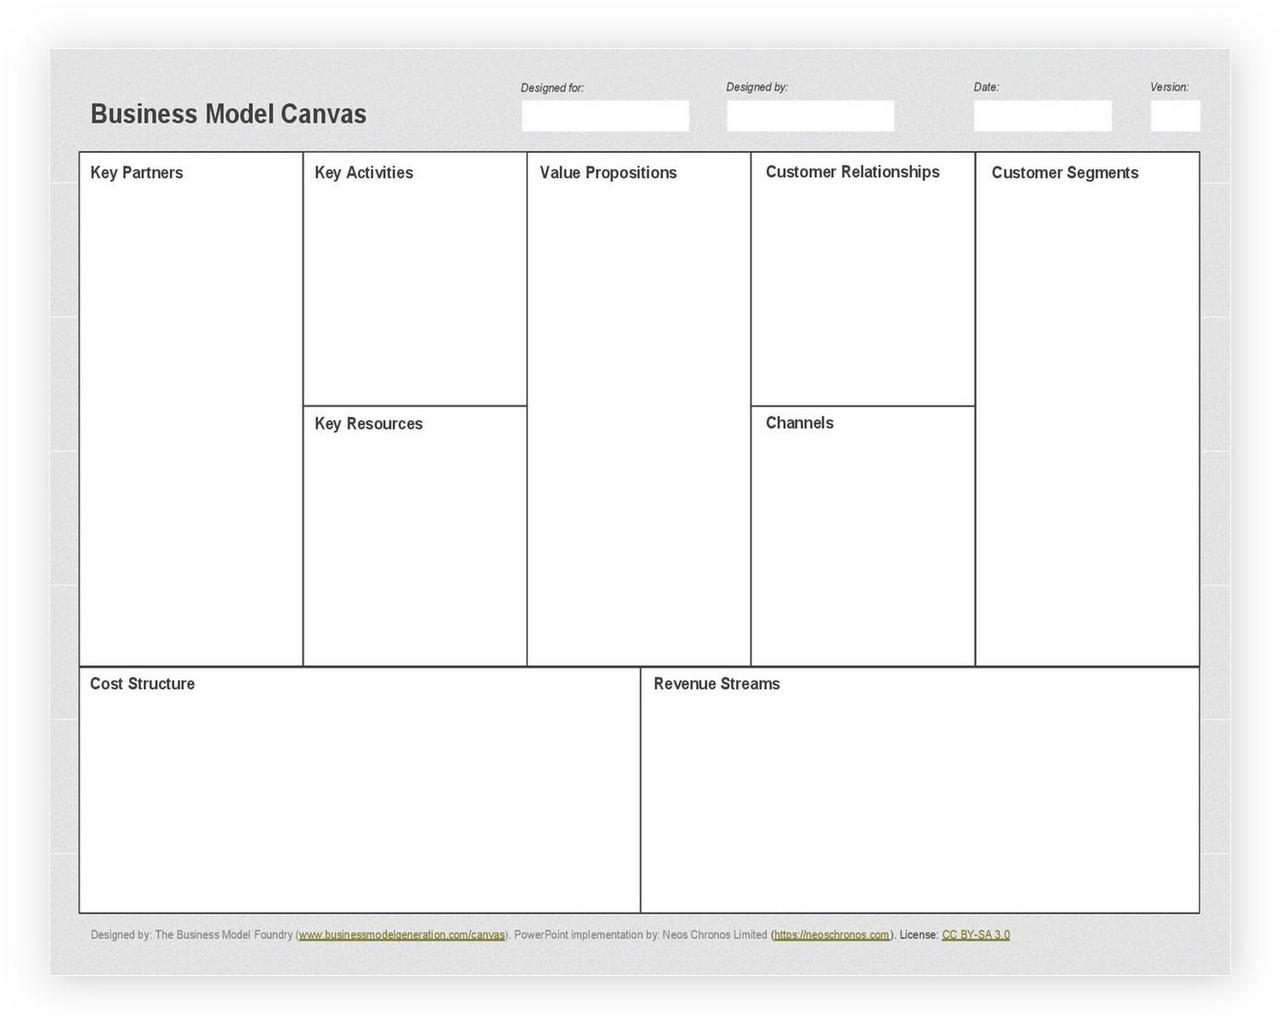 Business Model Canvas Template ppt 08